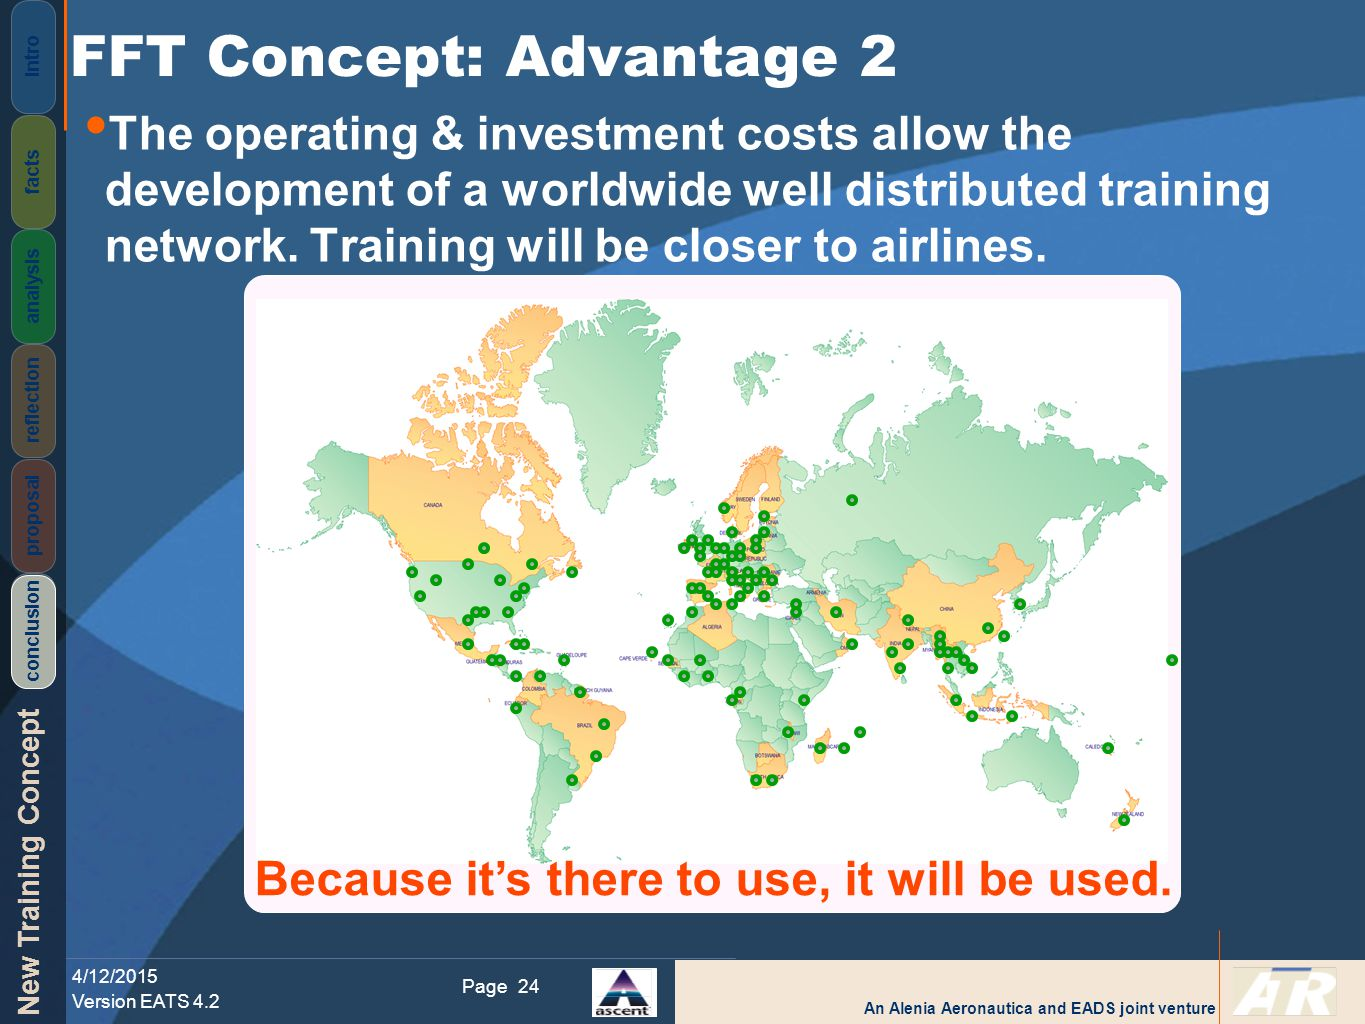 An Alenia Aeronautica and EADS joint venture New Training Concept 4/12/2015 Version EATS 4.2 Page Intro facts analysis reflection proposal conclusion 24 The operating & investment costs allow the development of a worldwide well distributed training network.